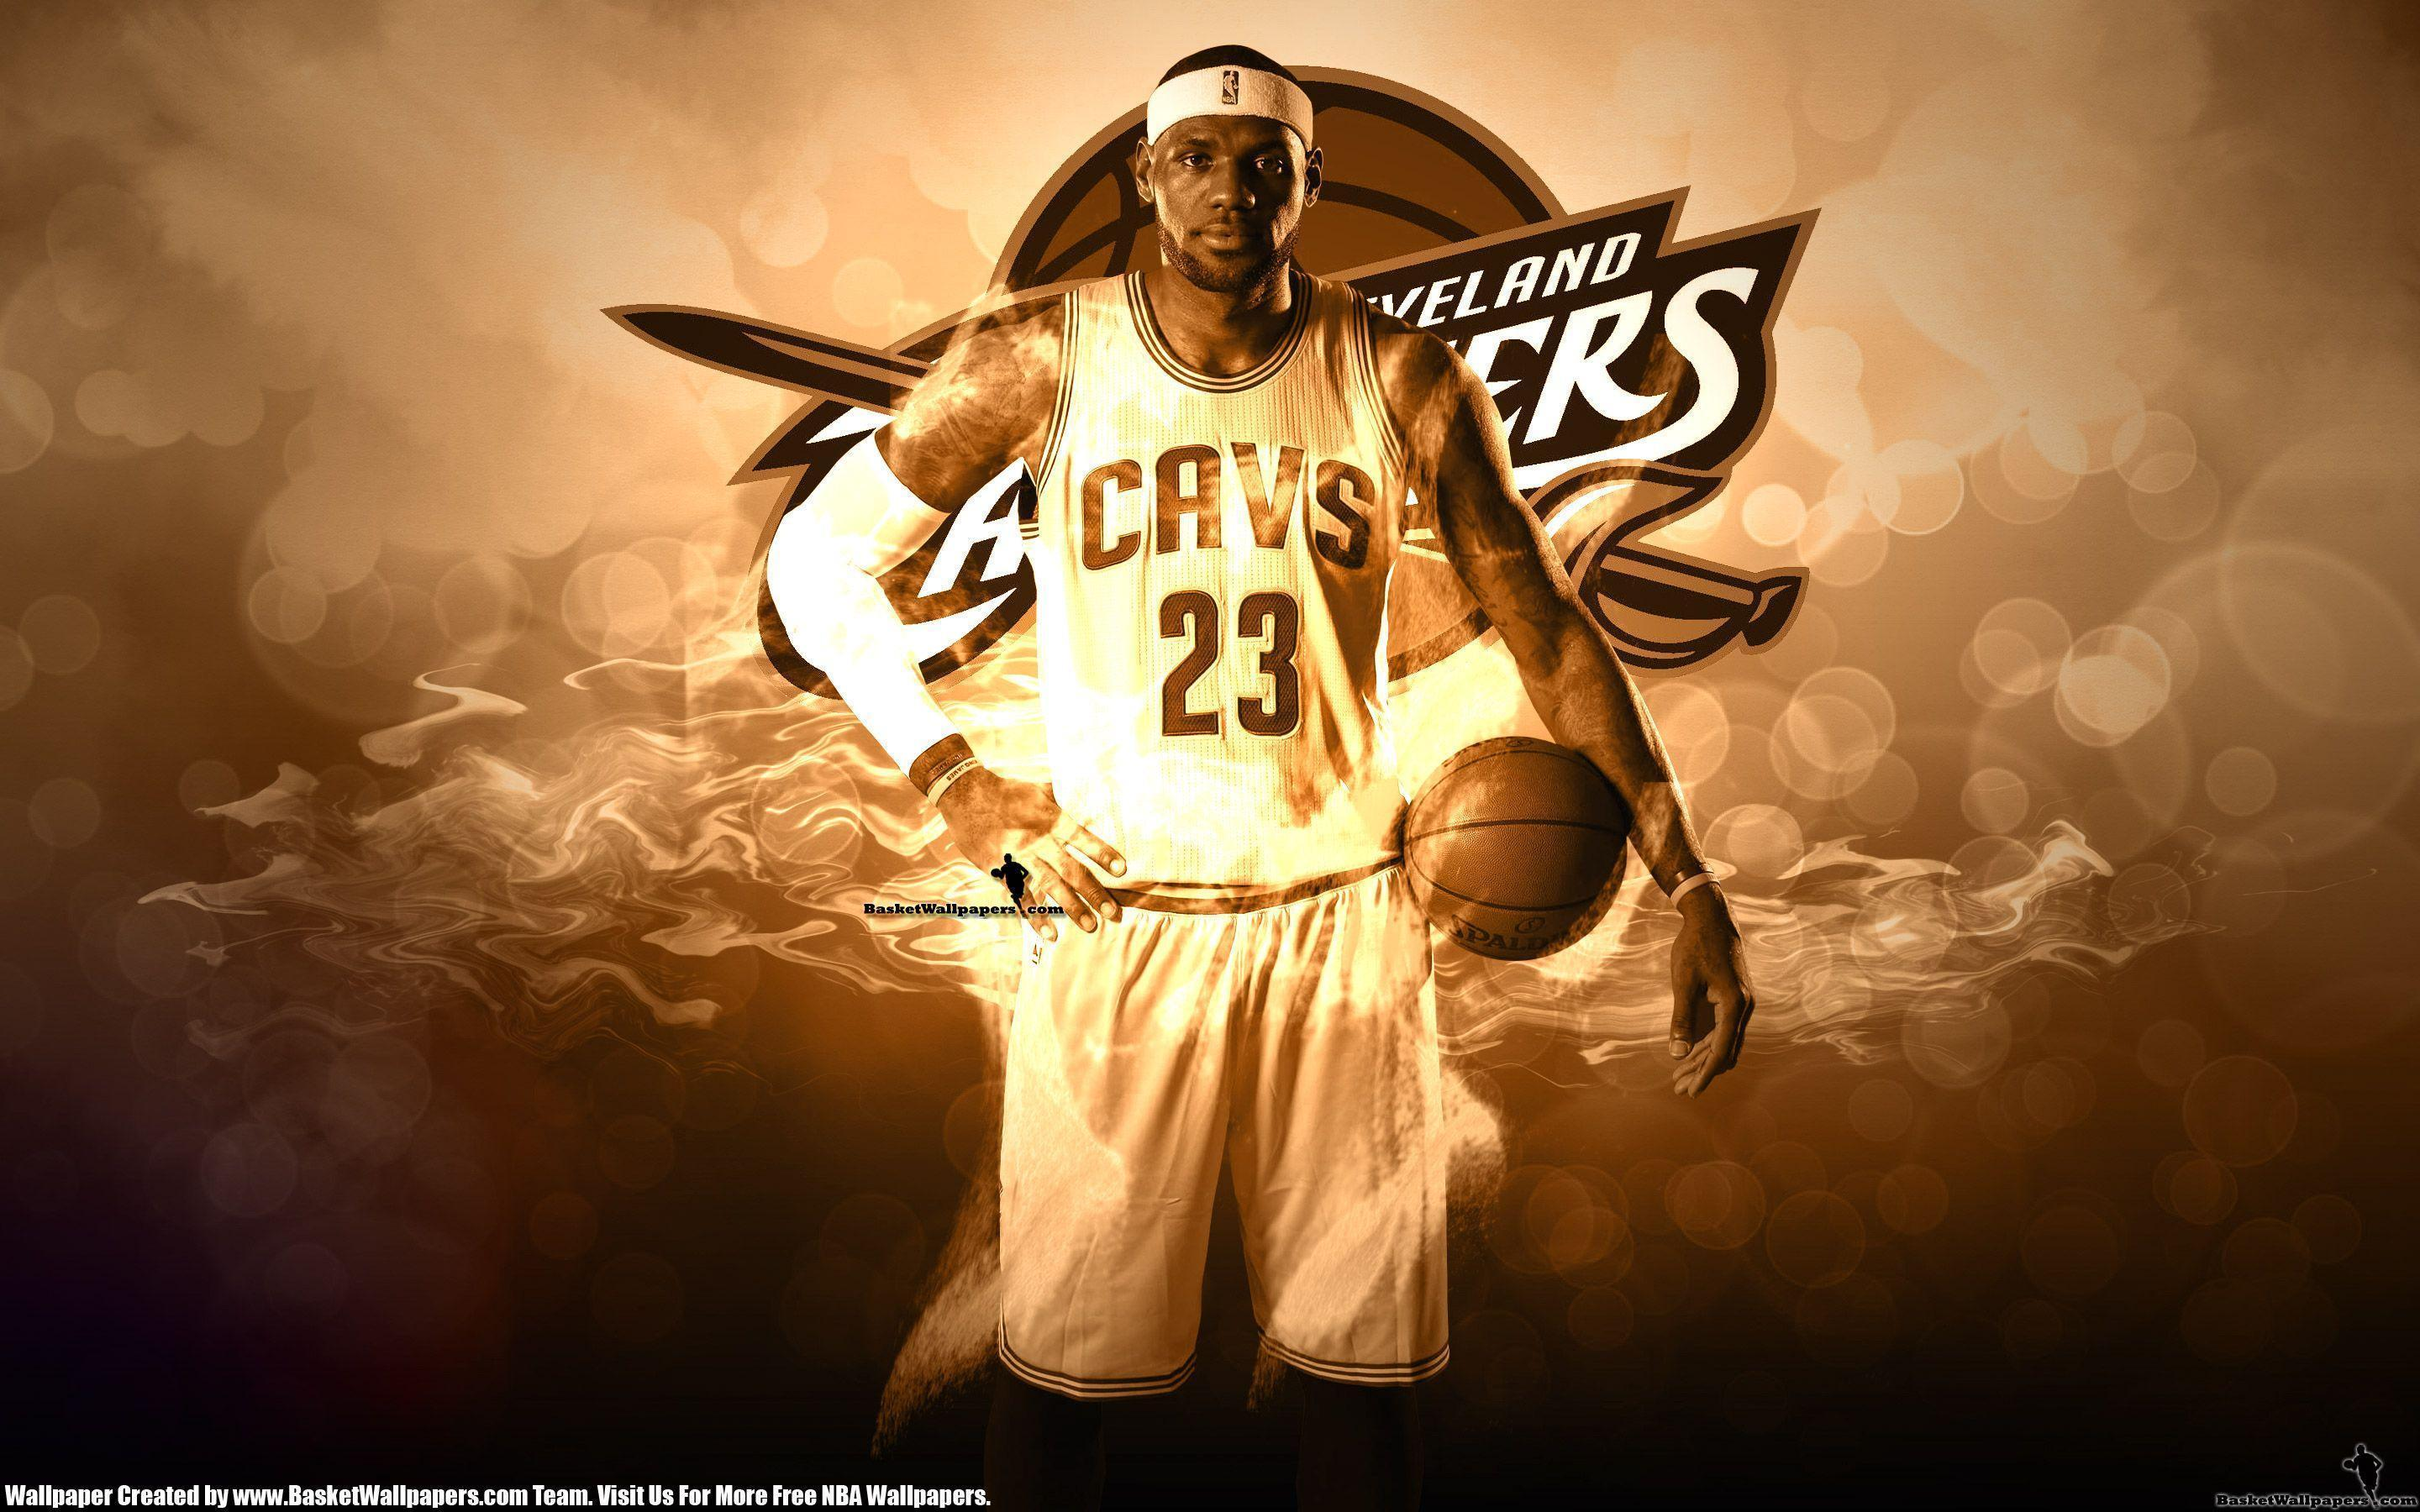 Nba Wallpapers Lebron James 2015 - WallpaperSafari